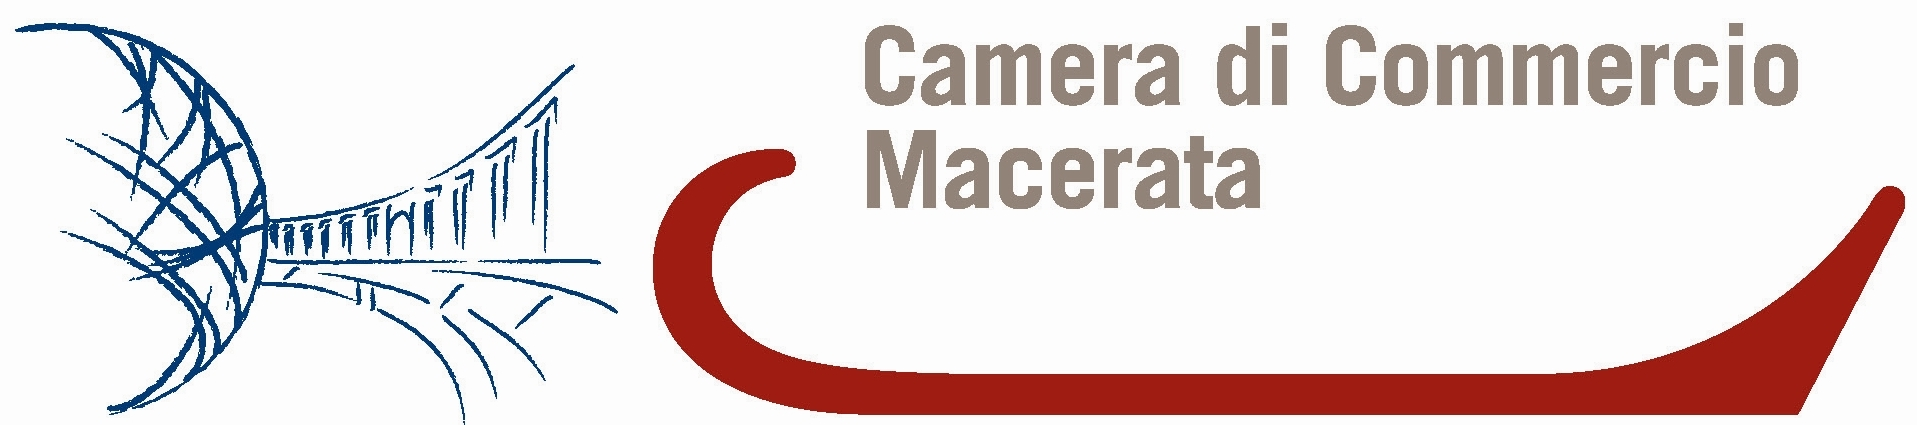 Logo Camera di Commercio Macerata